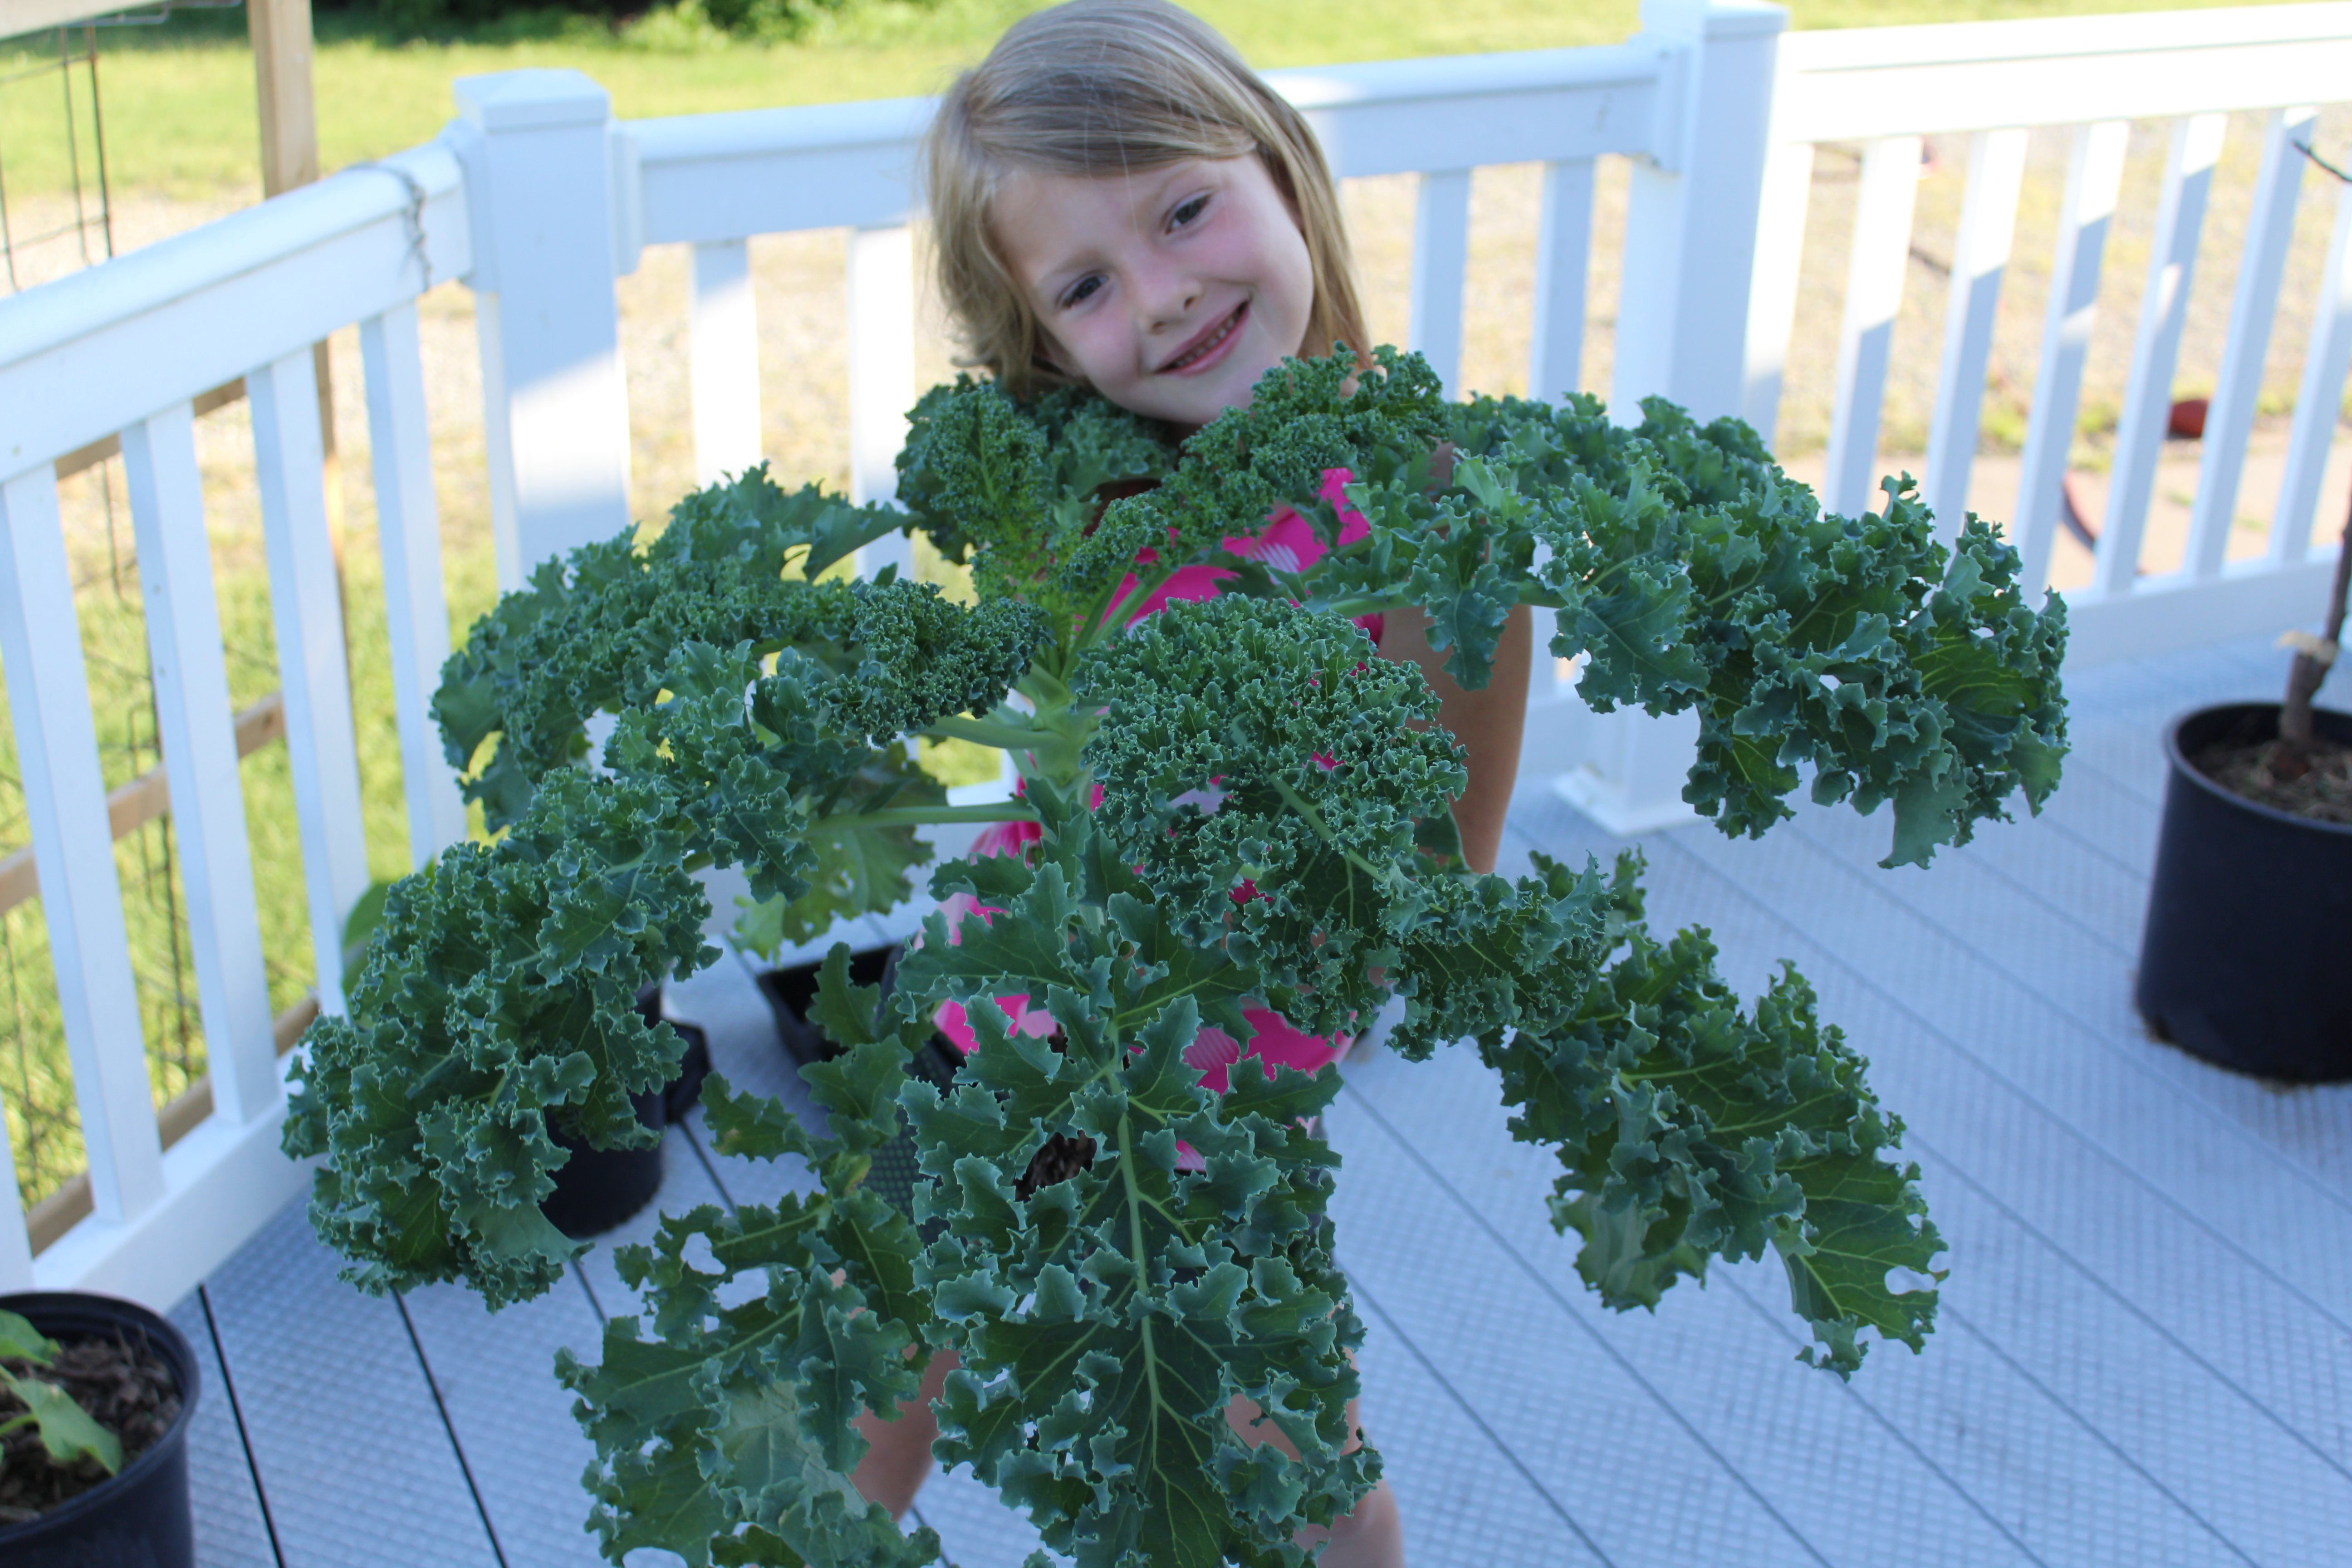 Young girl holding garden fresh kale